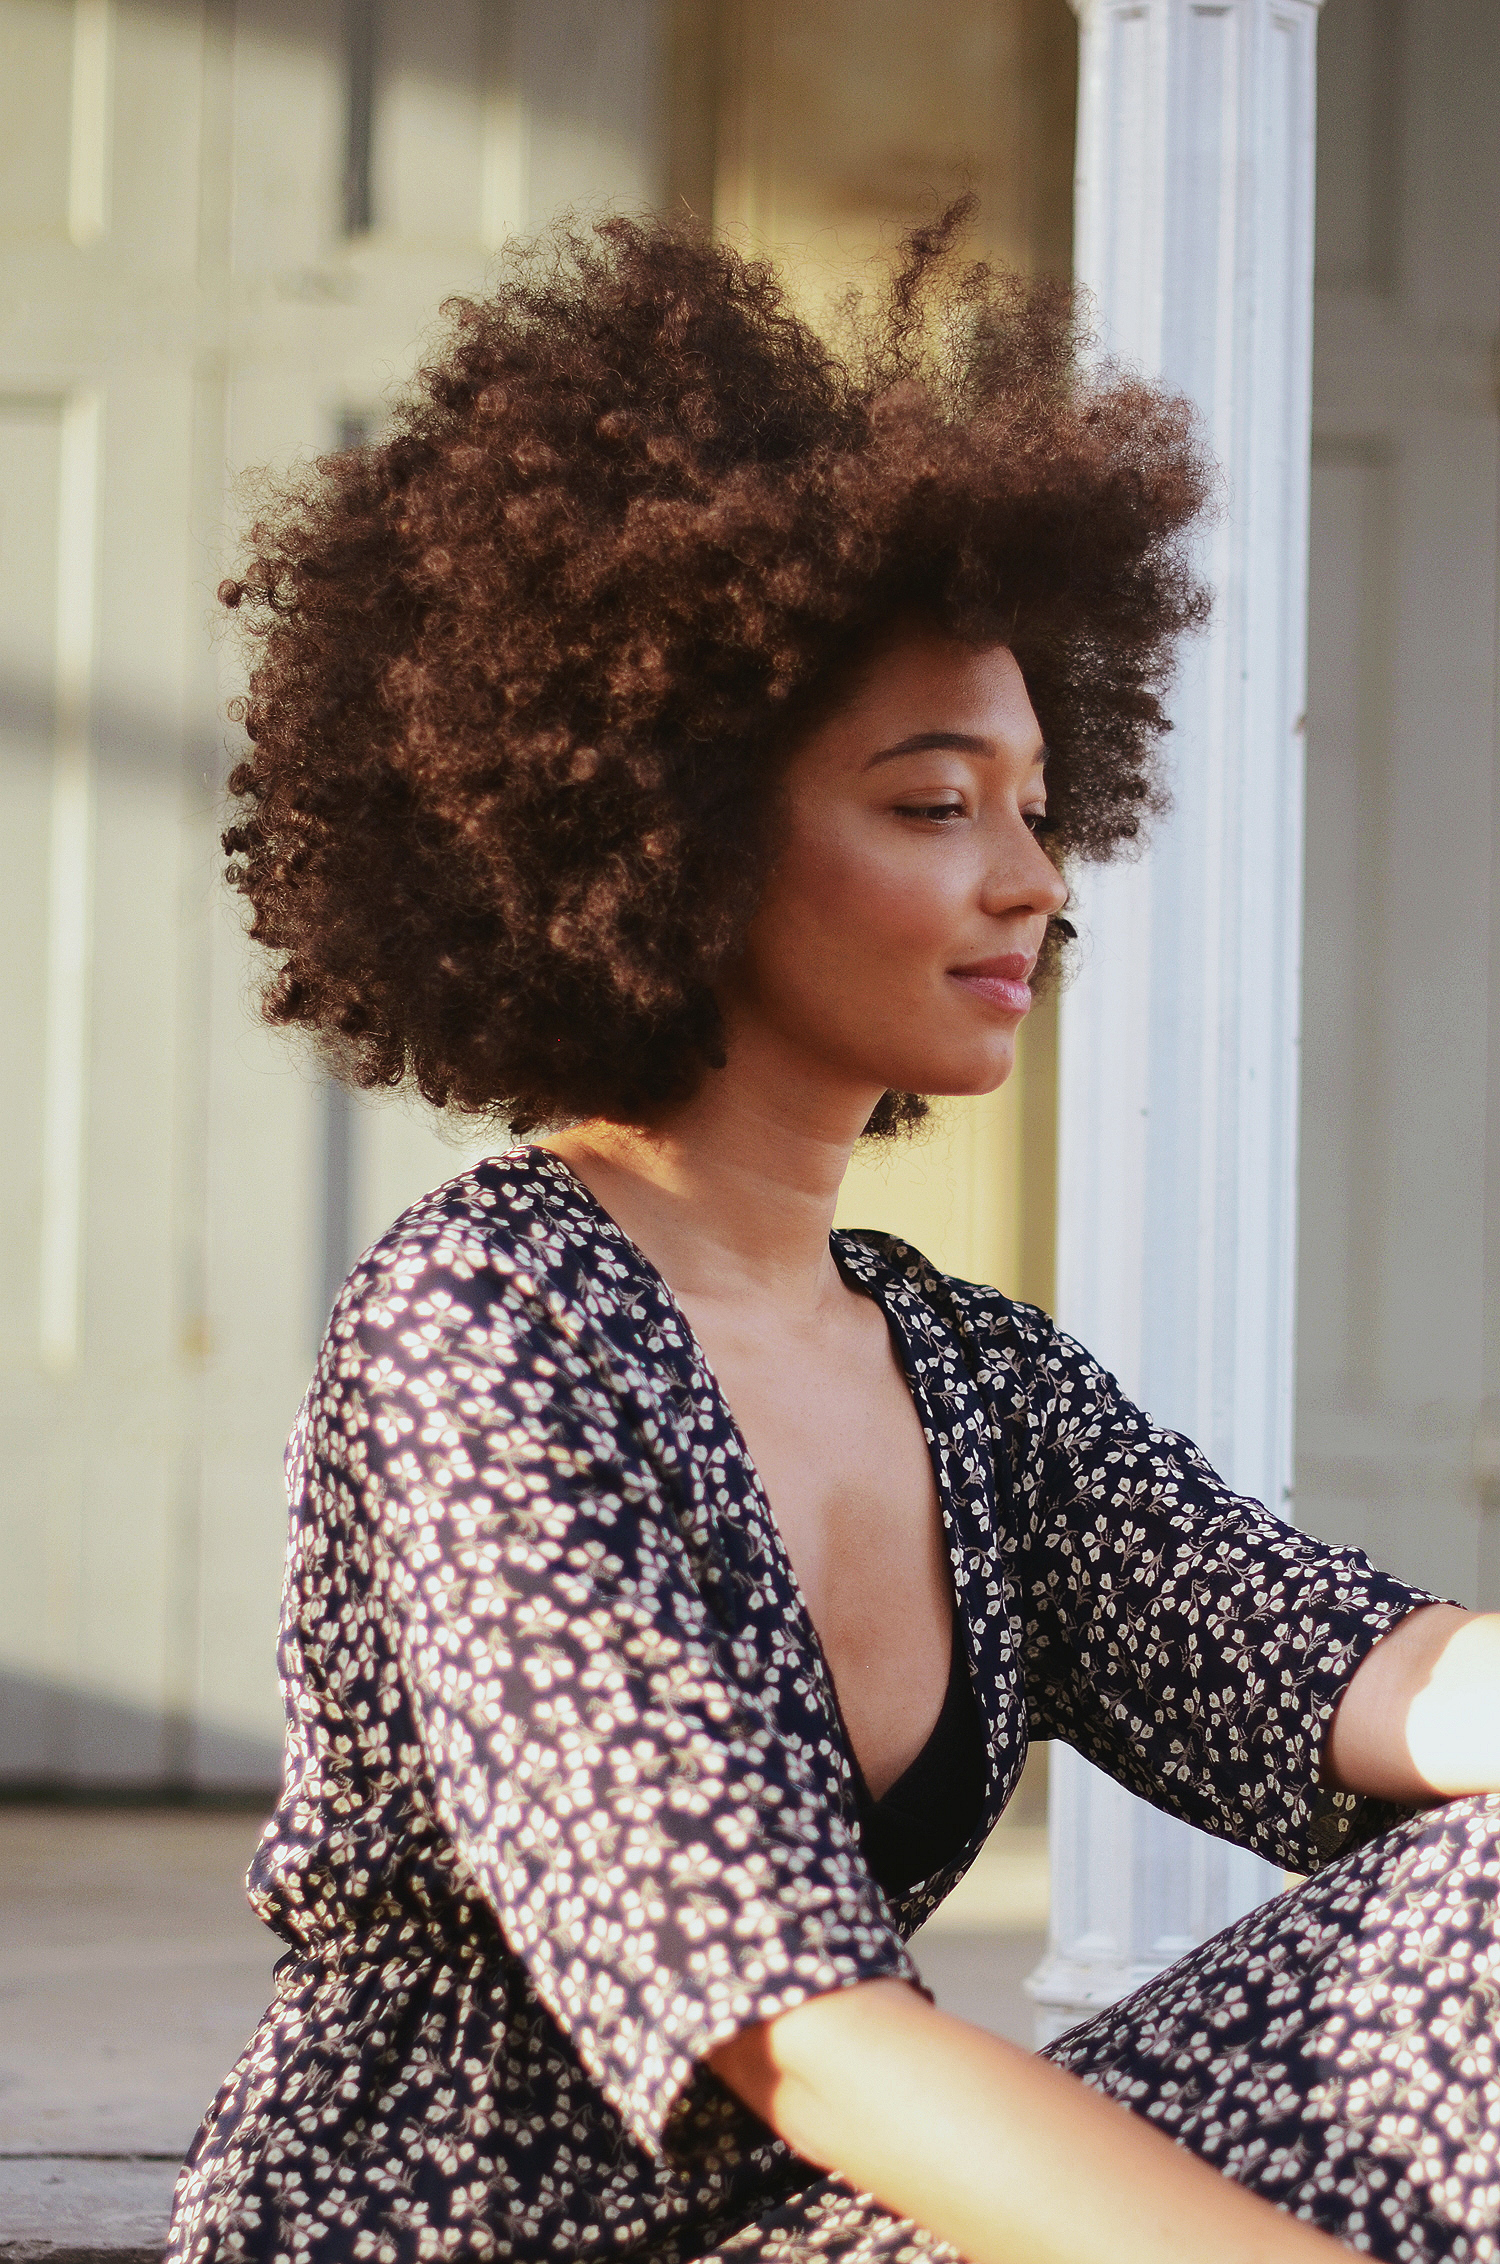 mercredie-blog-mode-geneve-blogueuse-bloggeuse-suisse-swiss-switzerland-robe-ganni-dress-floral-afro-hair-nappy-curly-curls-big-cheveux-frises